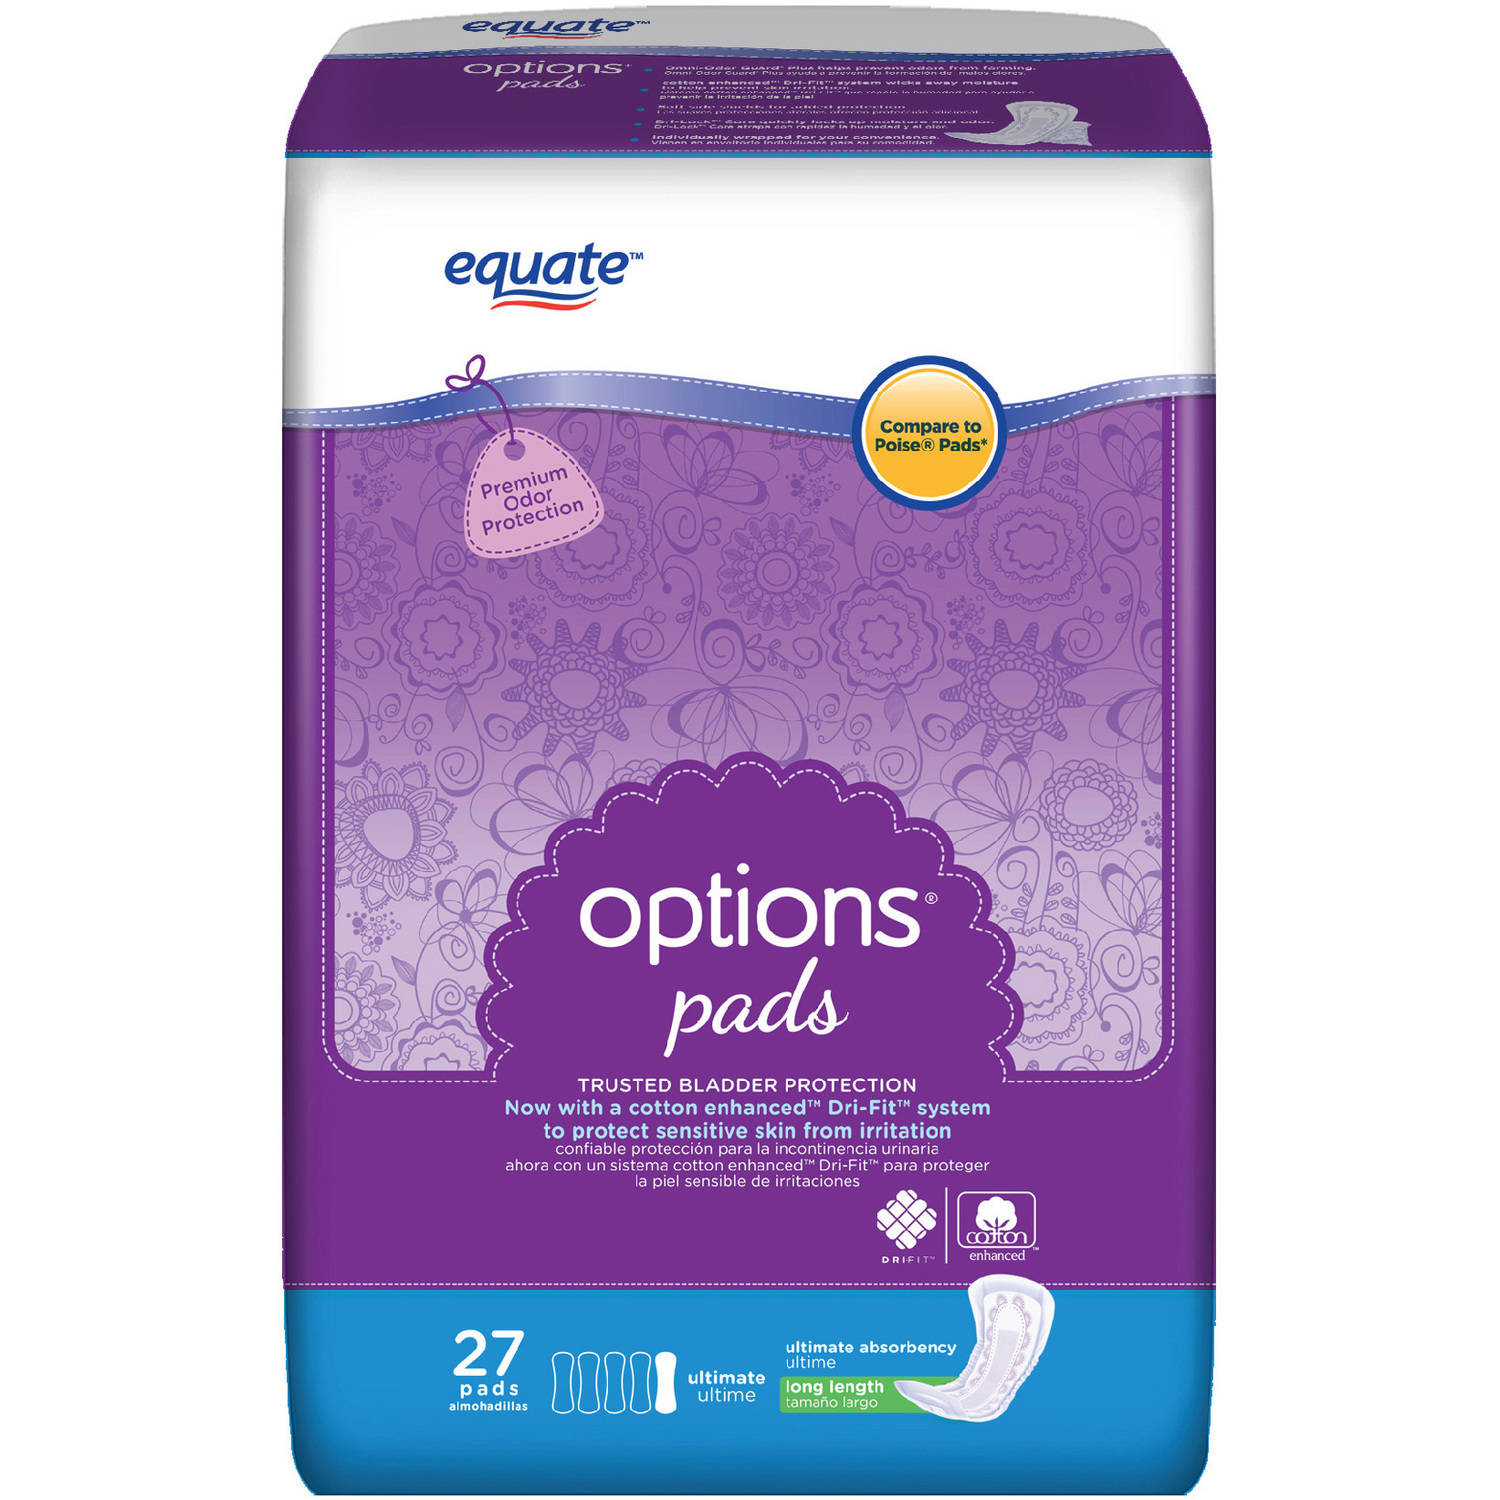 Equate Body Curve Ultimate Absorbency Incontinence Pads, Regular Length, 27 count